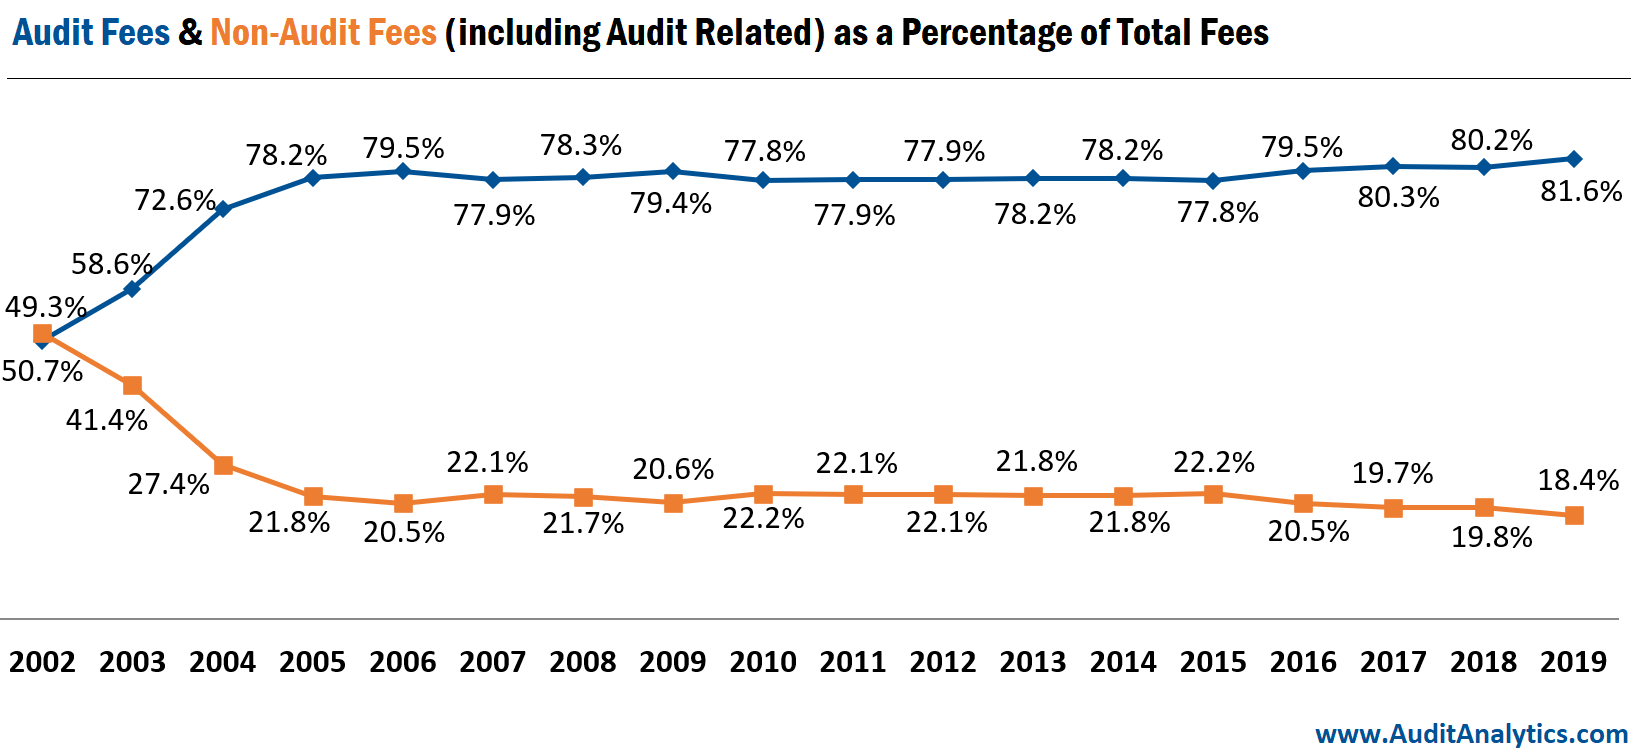 Audit Fees & Non-Audit Fees (Including Audit Related) as a Percentage of Total Fees